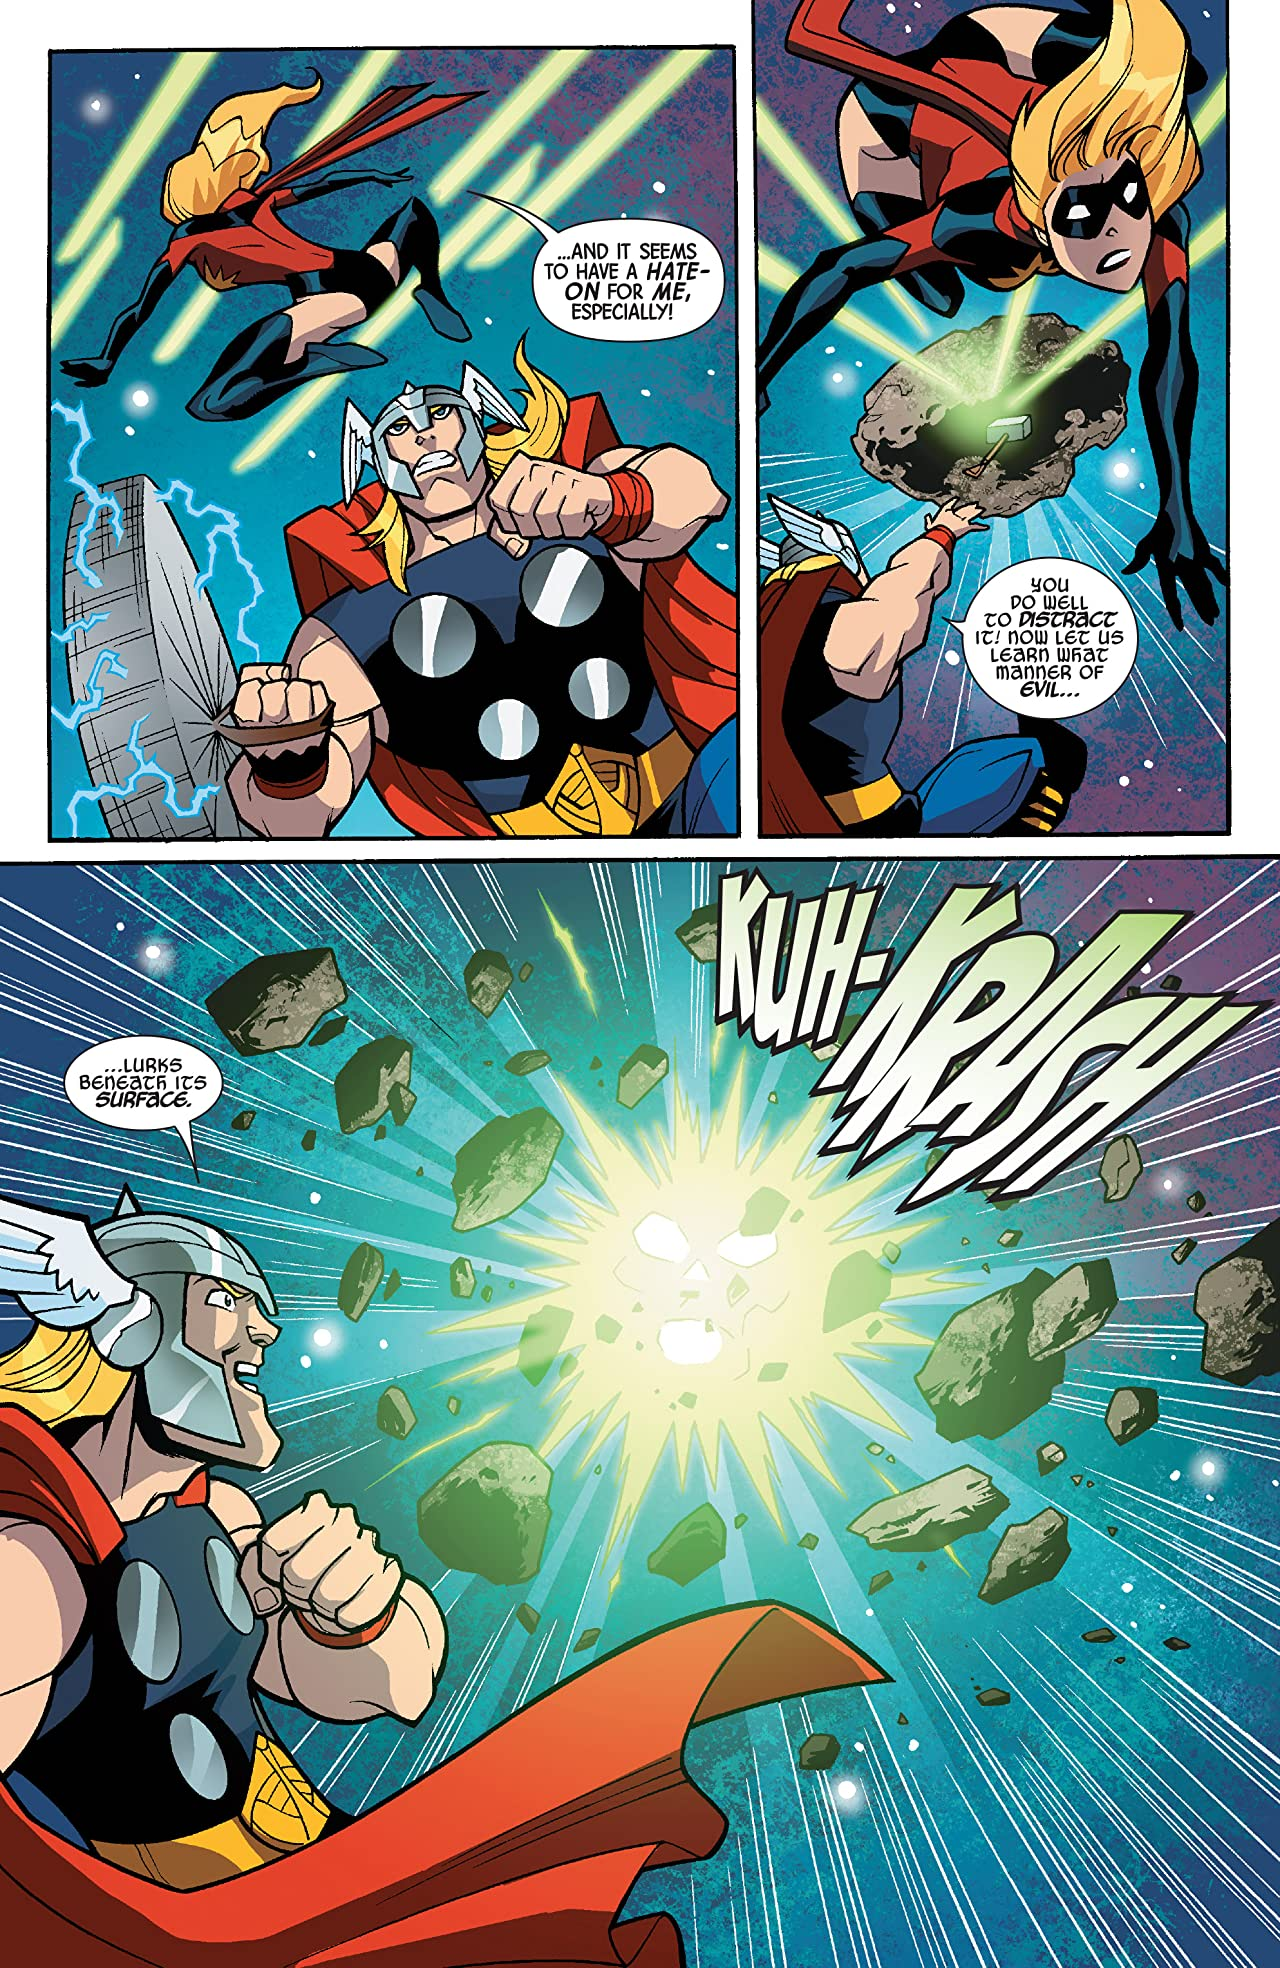 Marvel Universe Avengers: Earth's Mightiest Heroes (2012-2013) #9